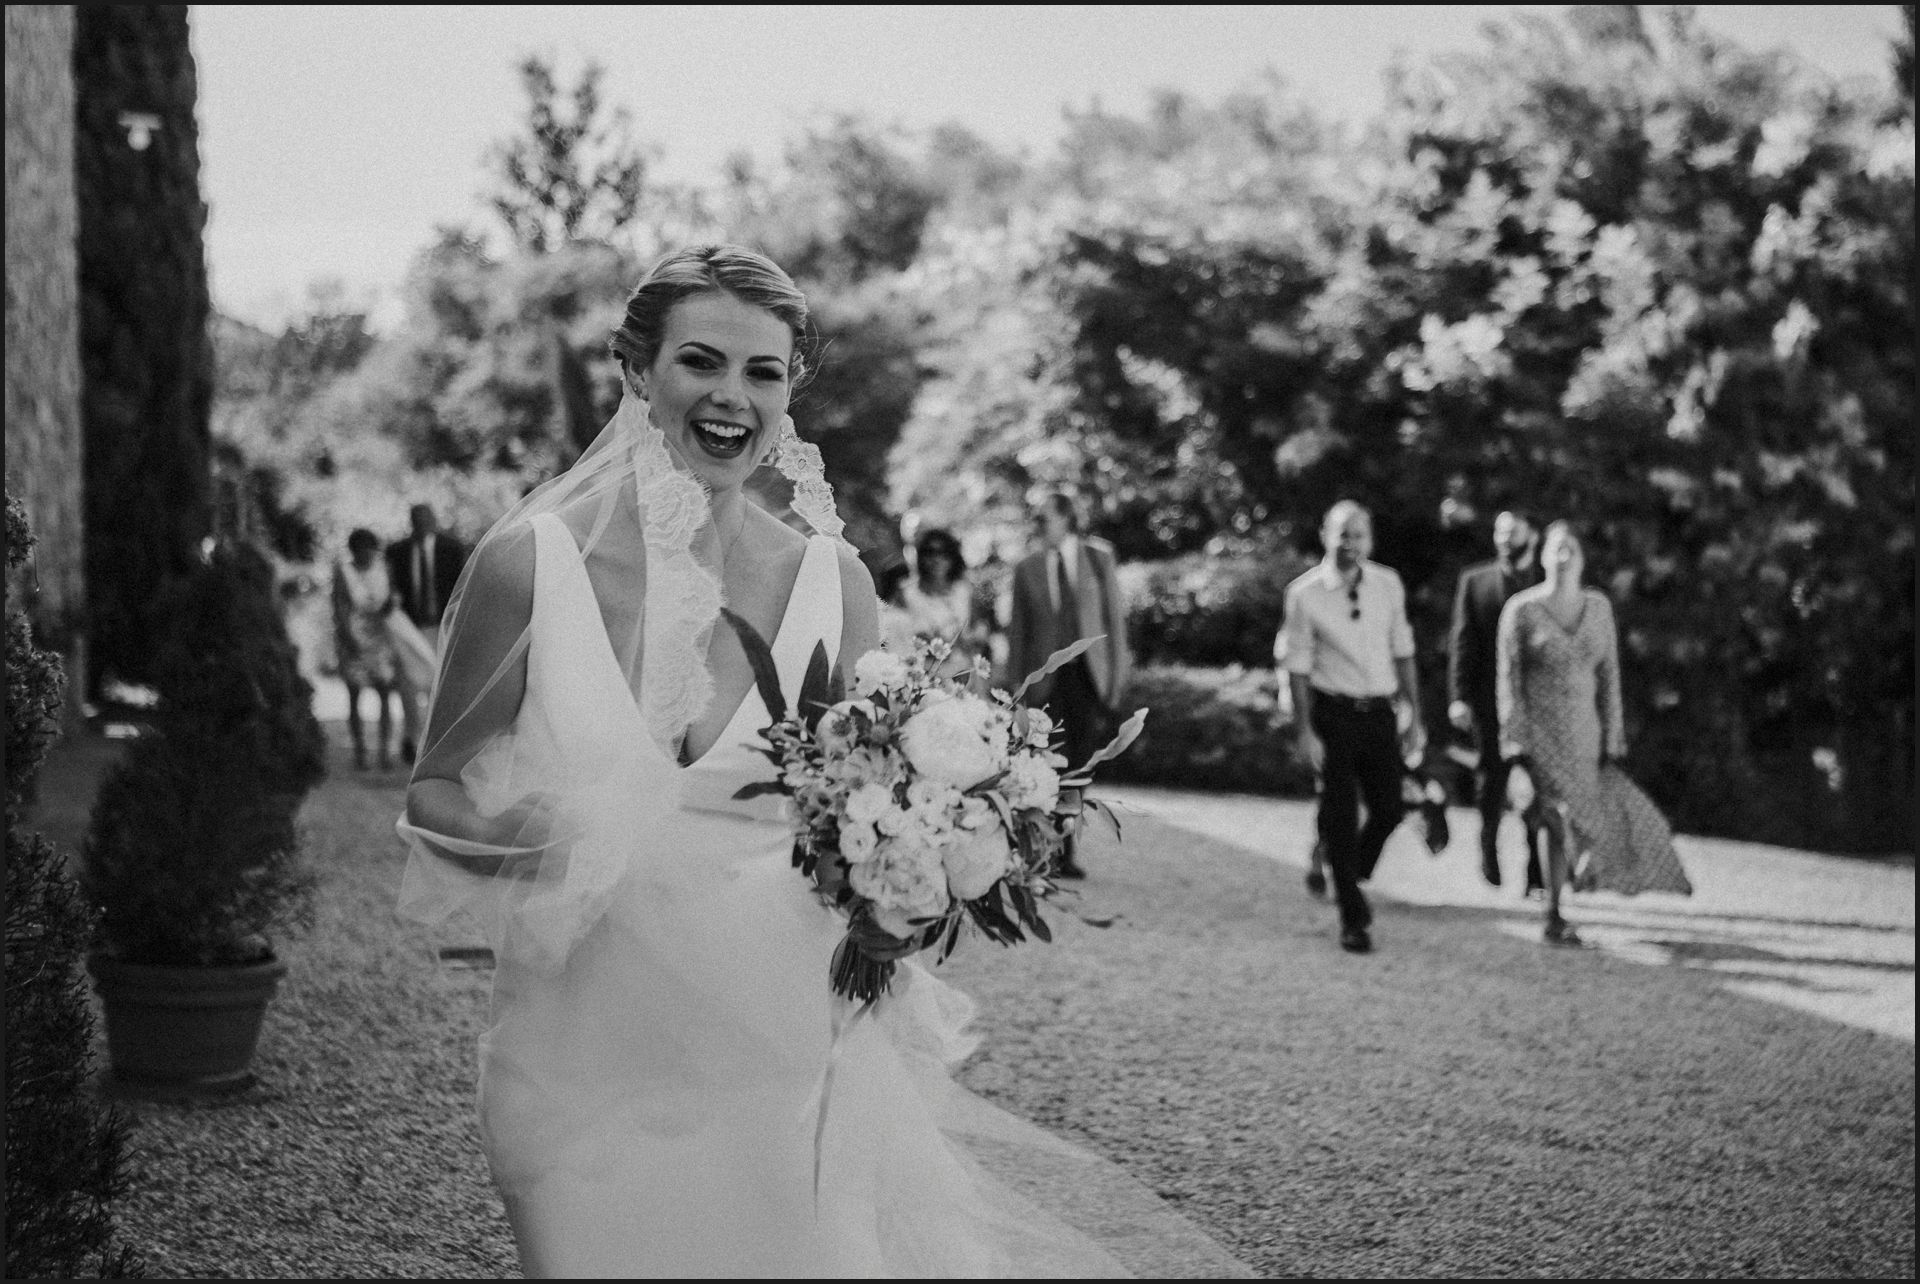 tenuta di canonica, umbria, wedding, ceremony, country, black and white